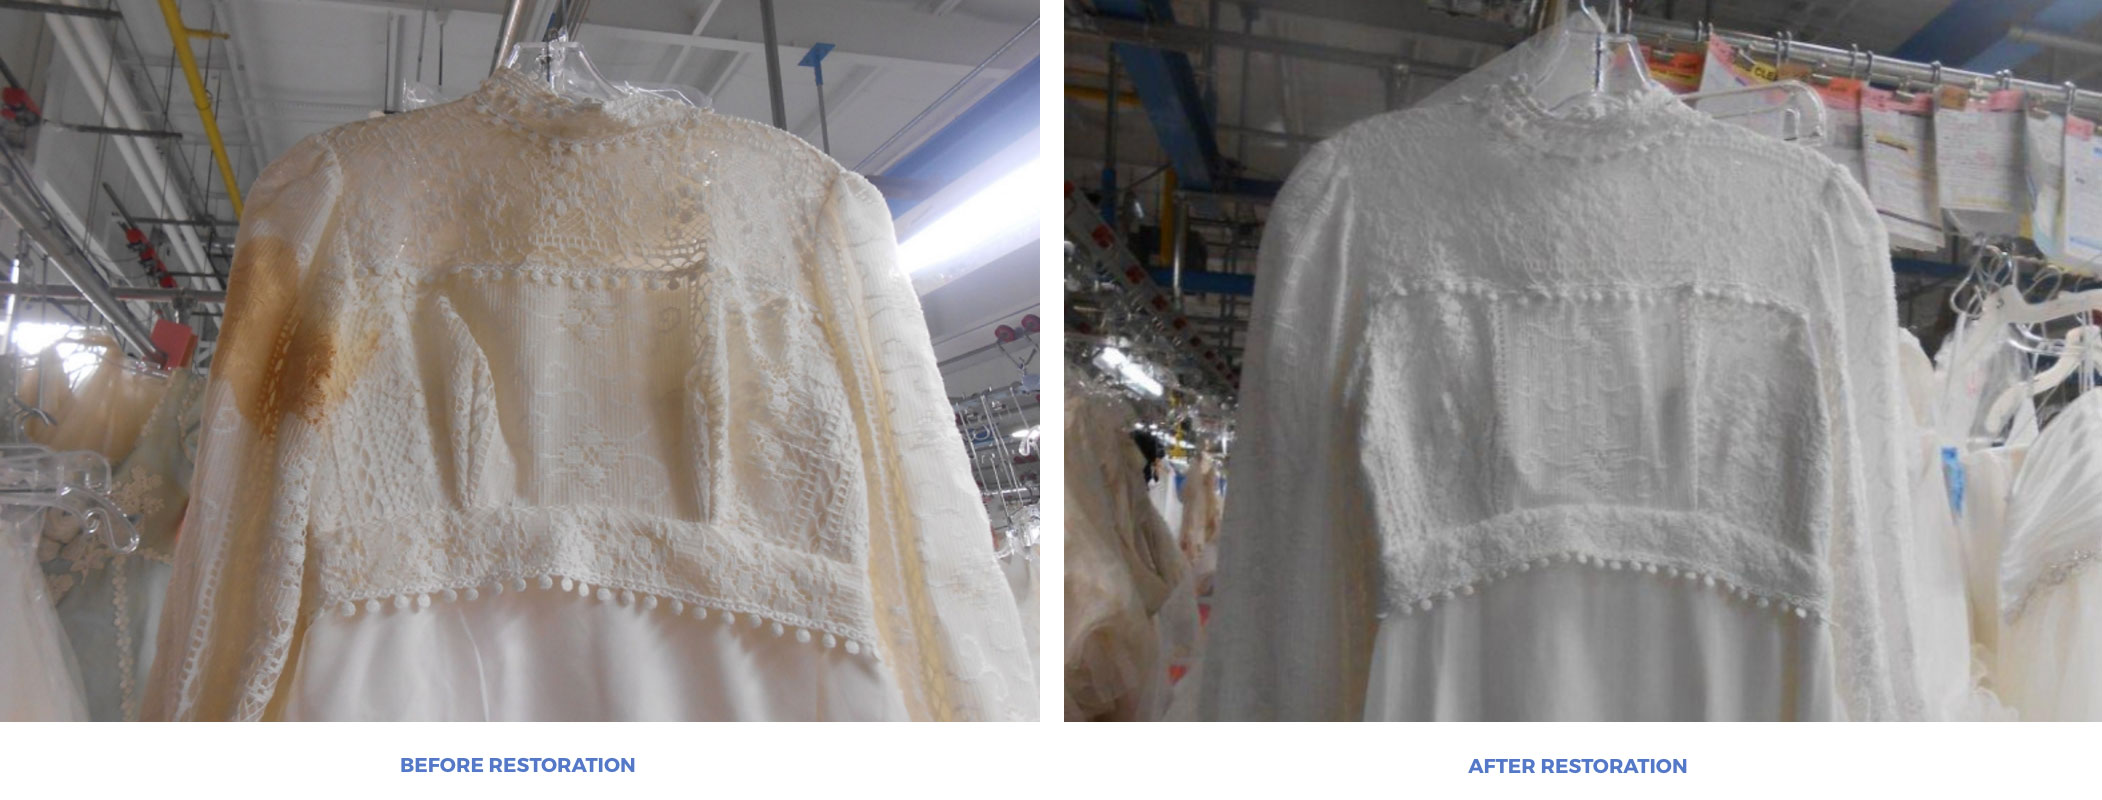 Affordable Wedding Dress Preservation + Cleaning Restoration - The Overwhelmed Bride Wedding Blog